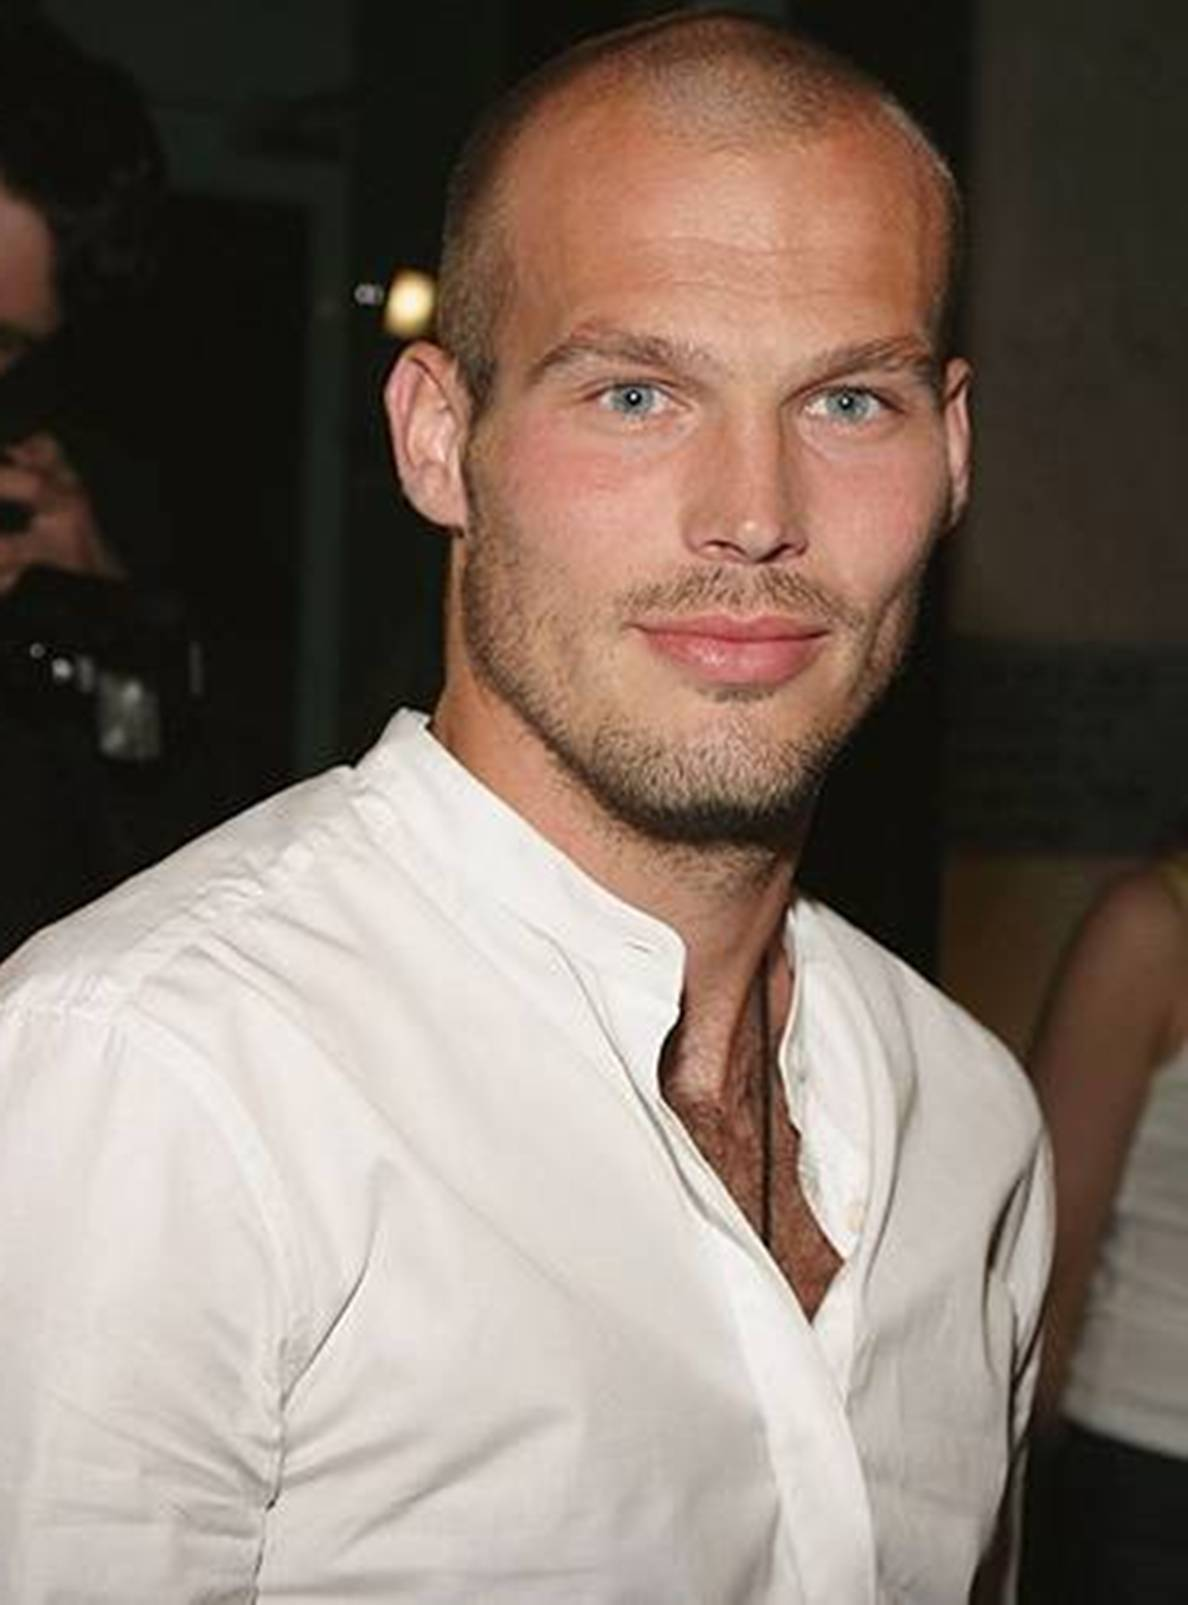 Sexy Bald Men Reasons Why Bald Men Rule - Bald hairstyle 2014